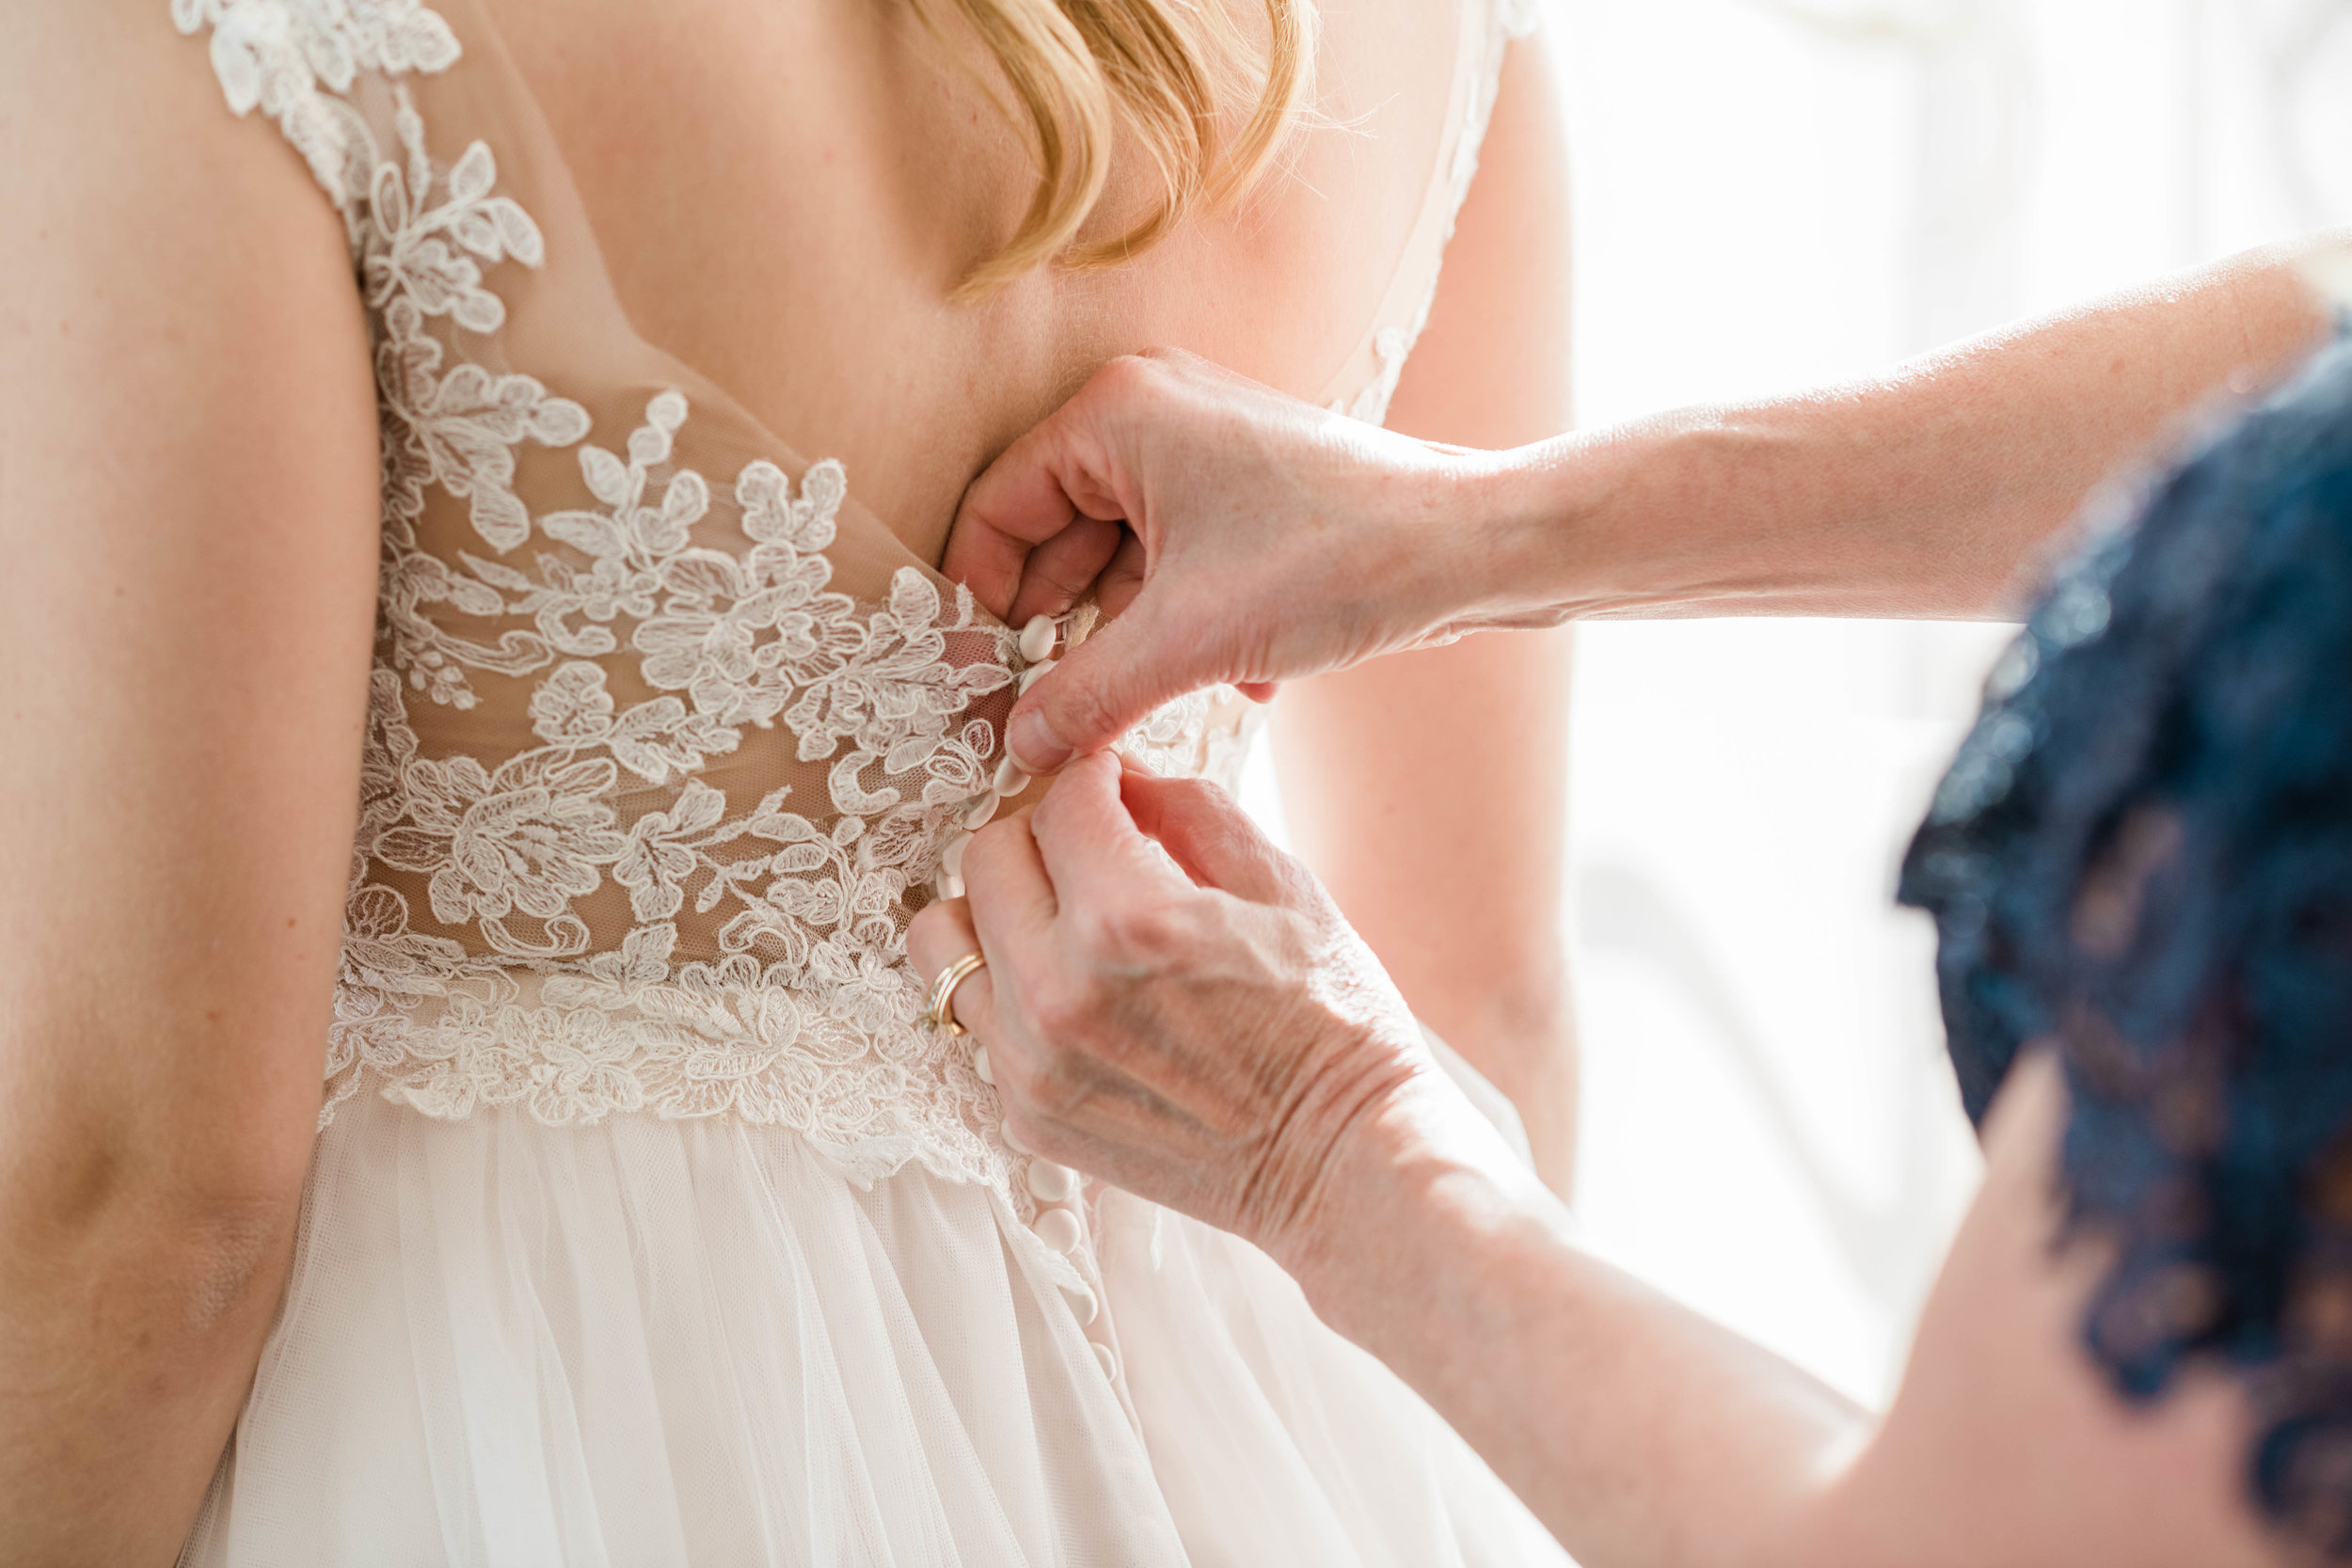 Mother buttoning up the bride's wedding dress